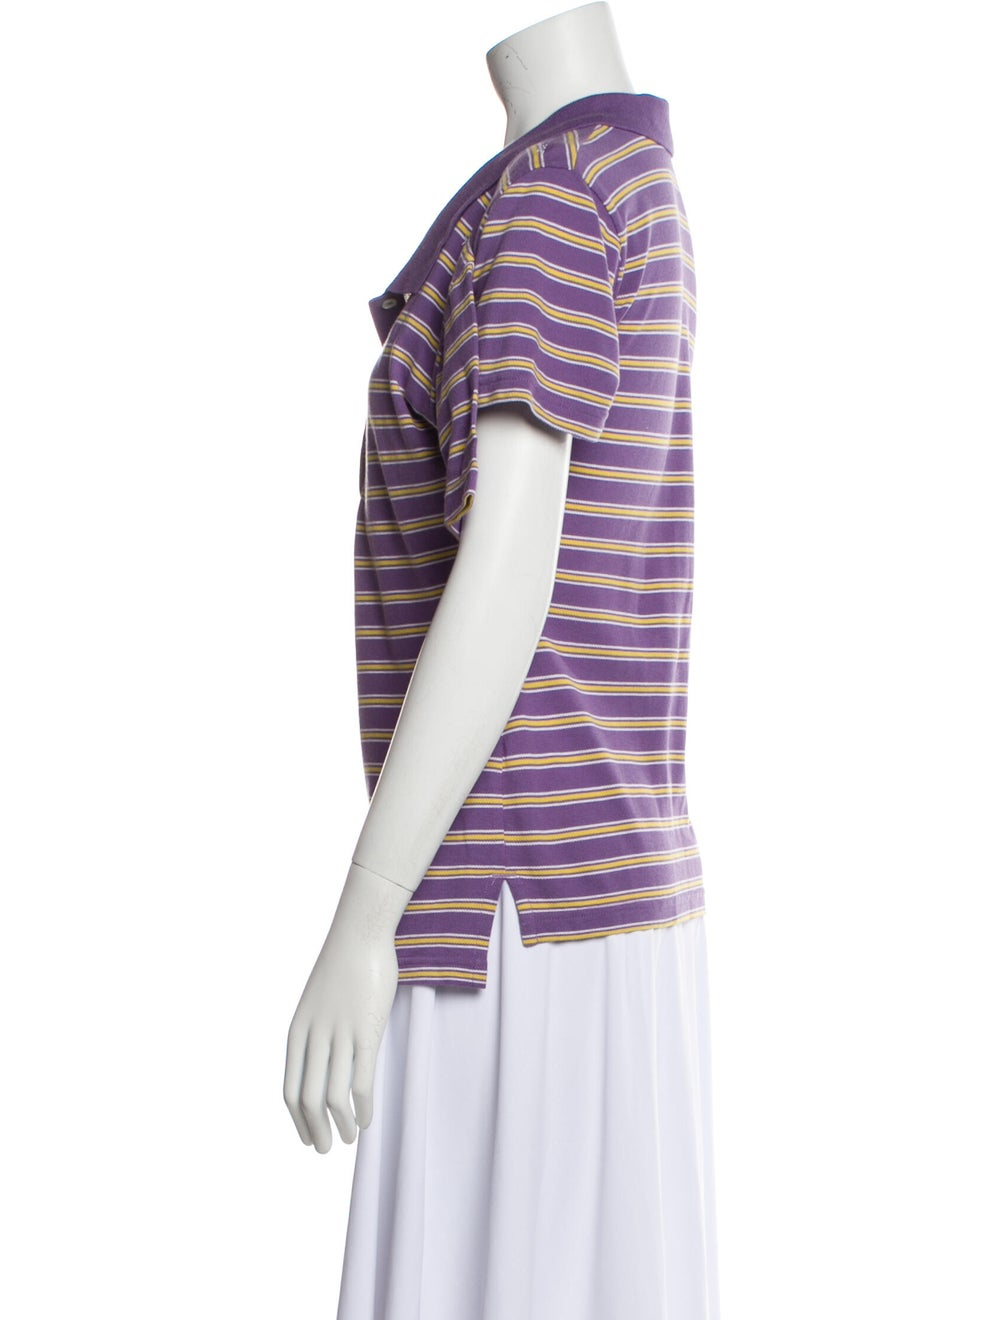 Y/Project Striped Short Sleeve Polo Purple - image 2